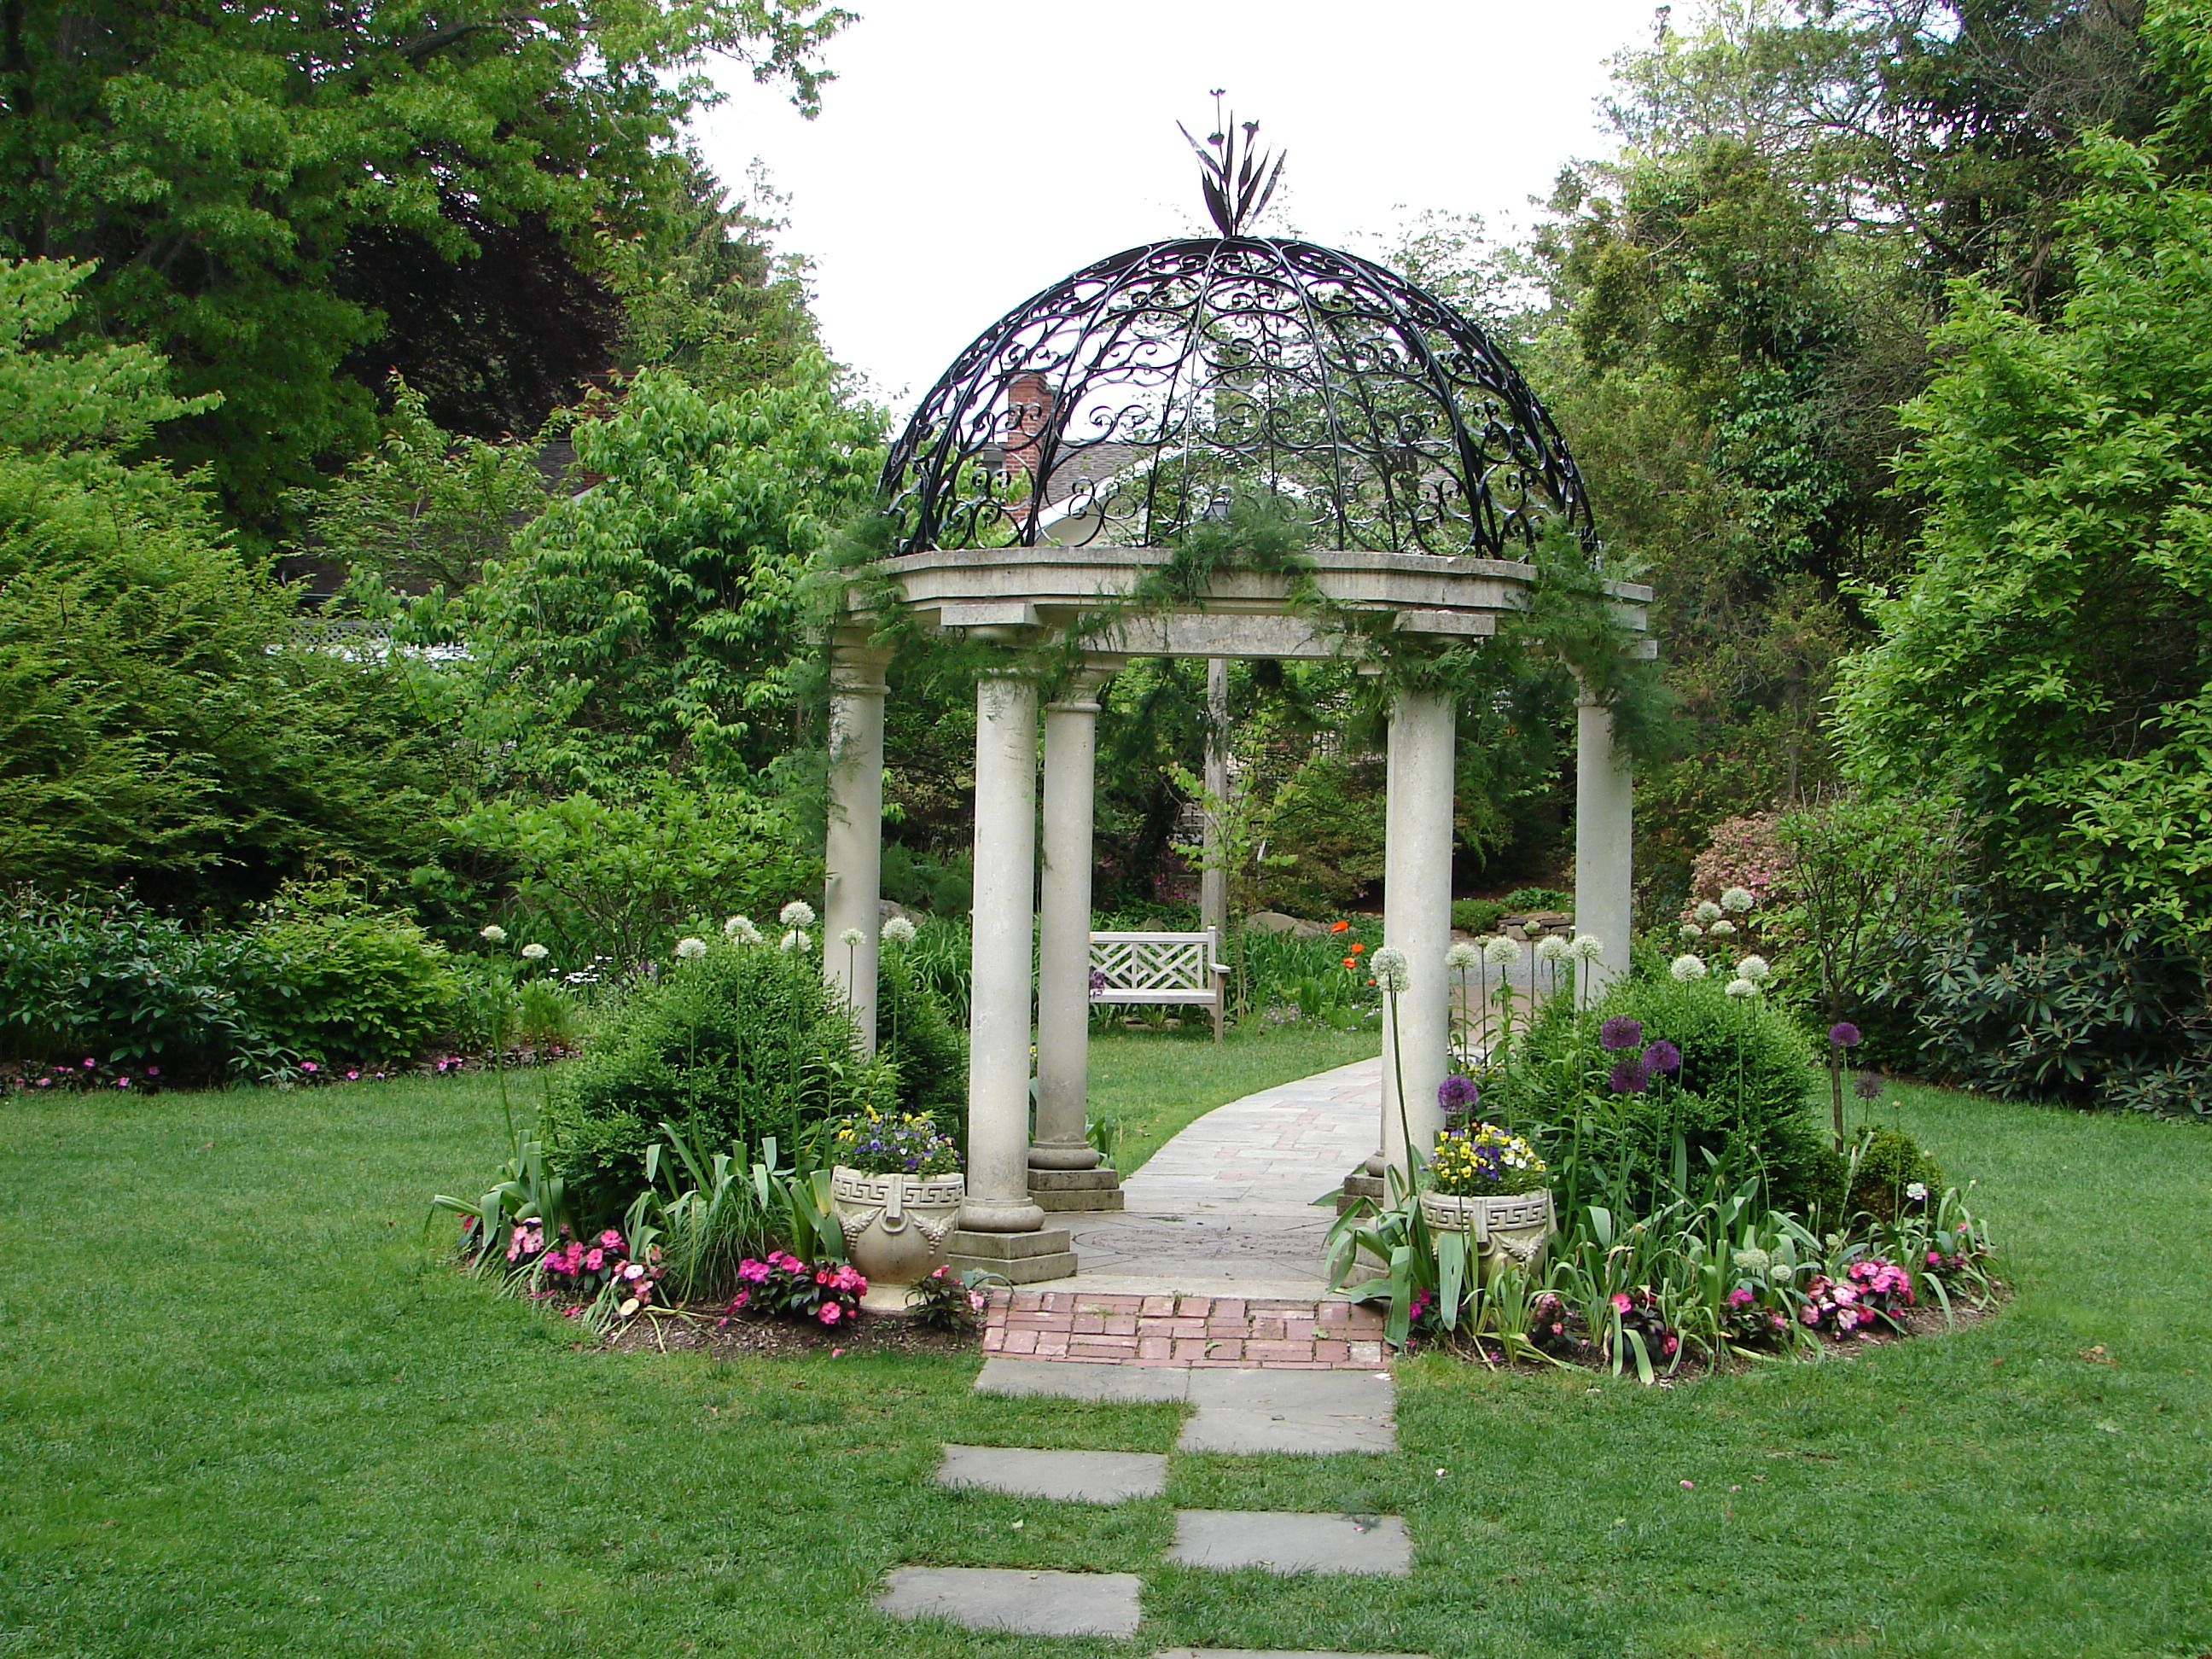 Peaceful Gazebo Garden Garden Gazebo Outdoor Gazebos Gazebo Wedding